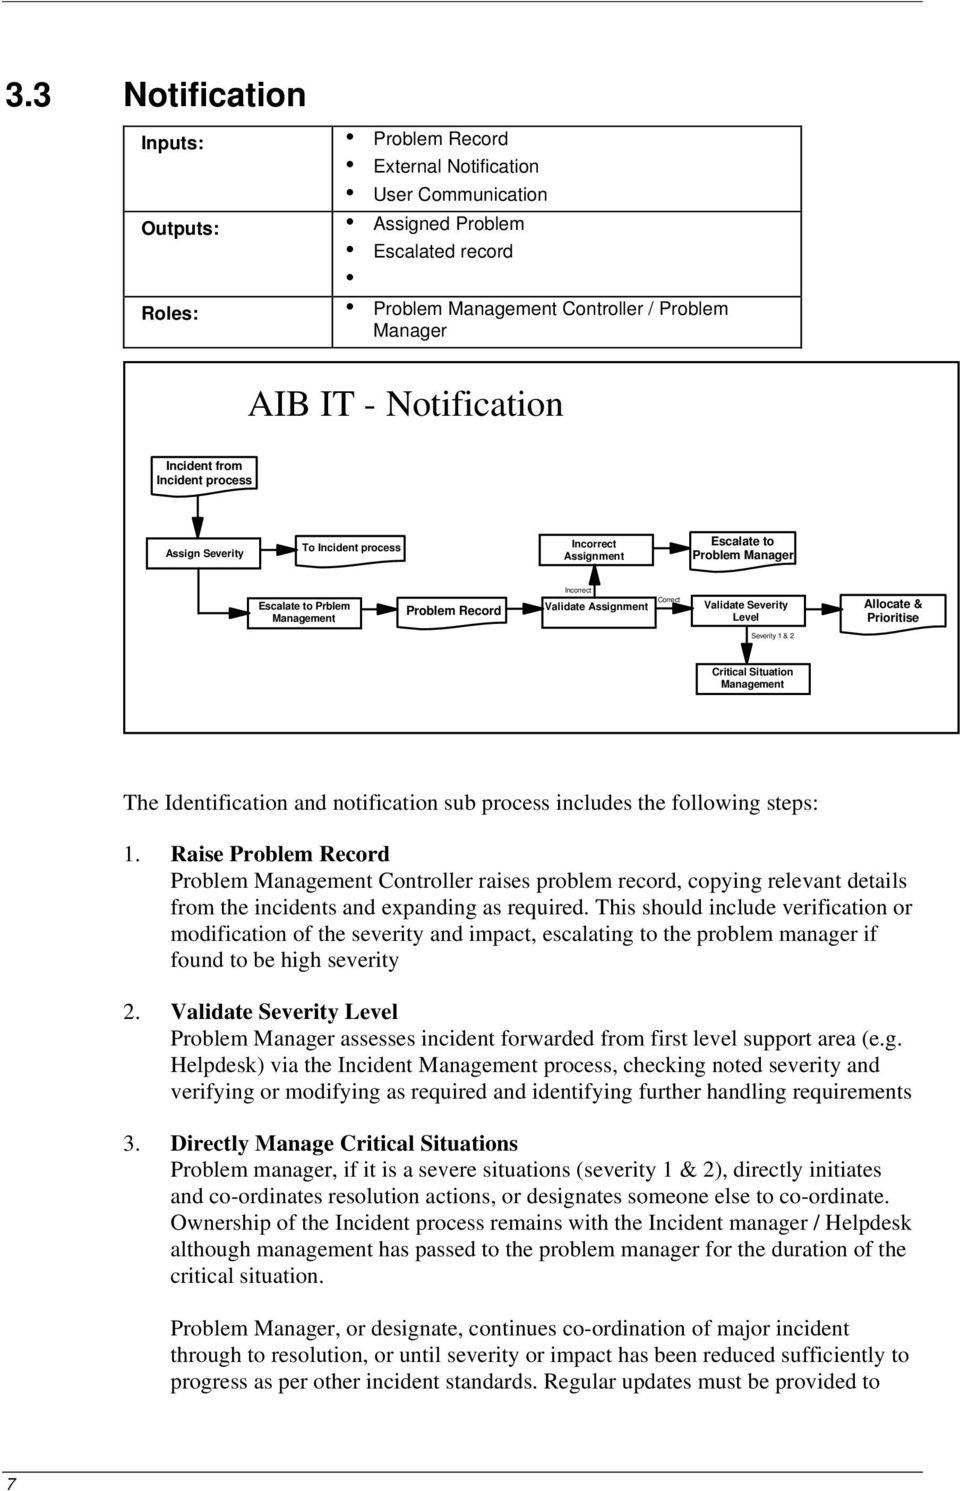 Severity 1 & 2 Critical Situation Management The Identification and notification sub process includes the folloing steps: 1.